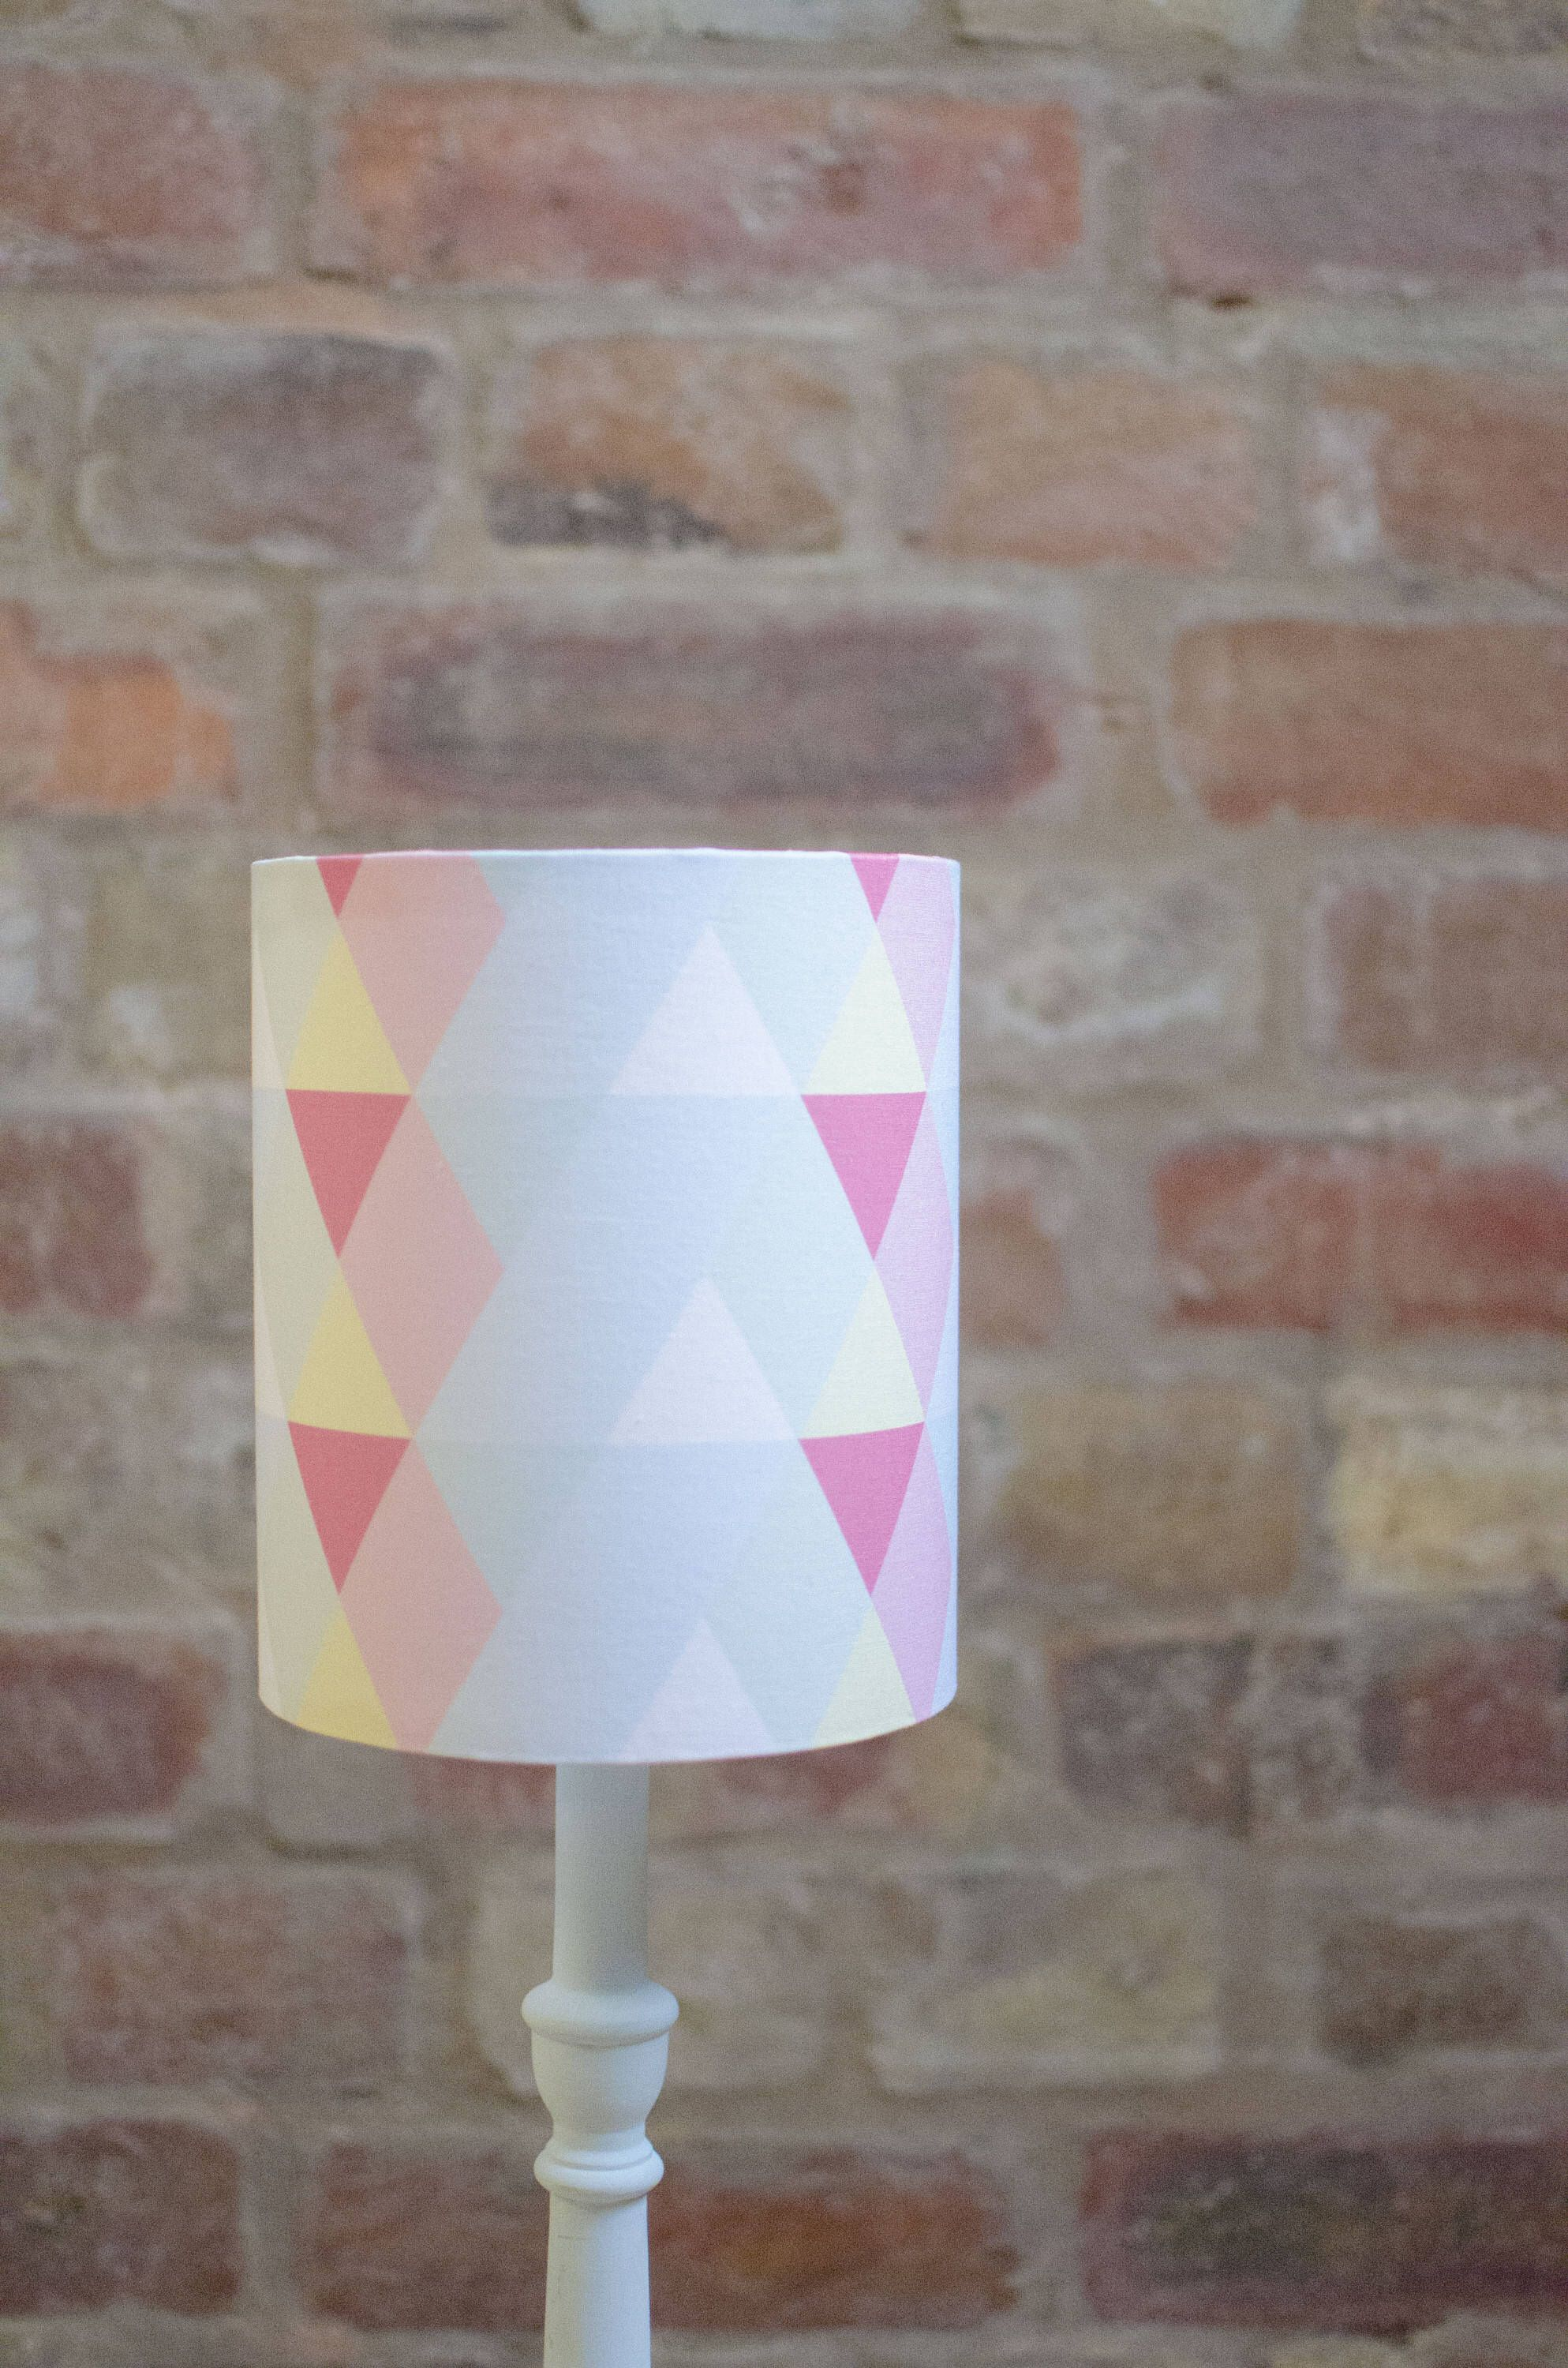 Pastel Lamp Shade Pastel Nursery Decor Pastel Home Decor Pink Lampshade Blue Lamp Shade Light Shade Geometric Lampshade Table Lamp Blue Lamp Shade Pastel Home Decor Pastel House